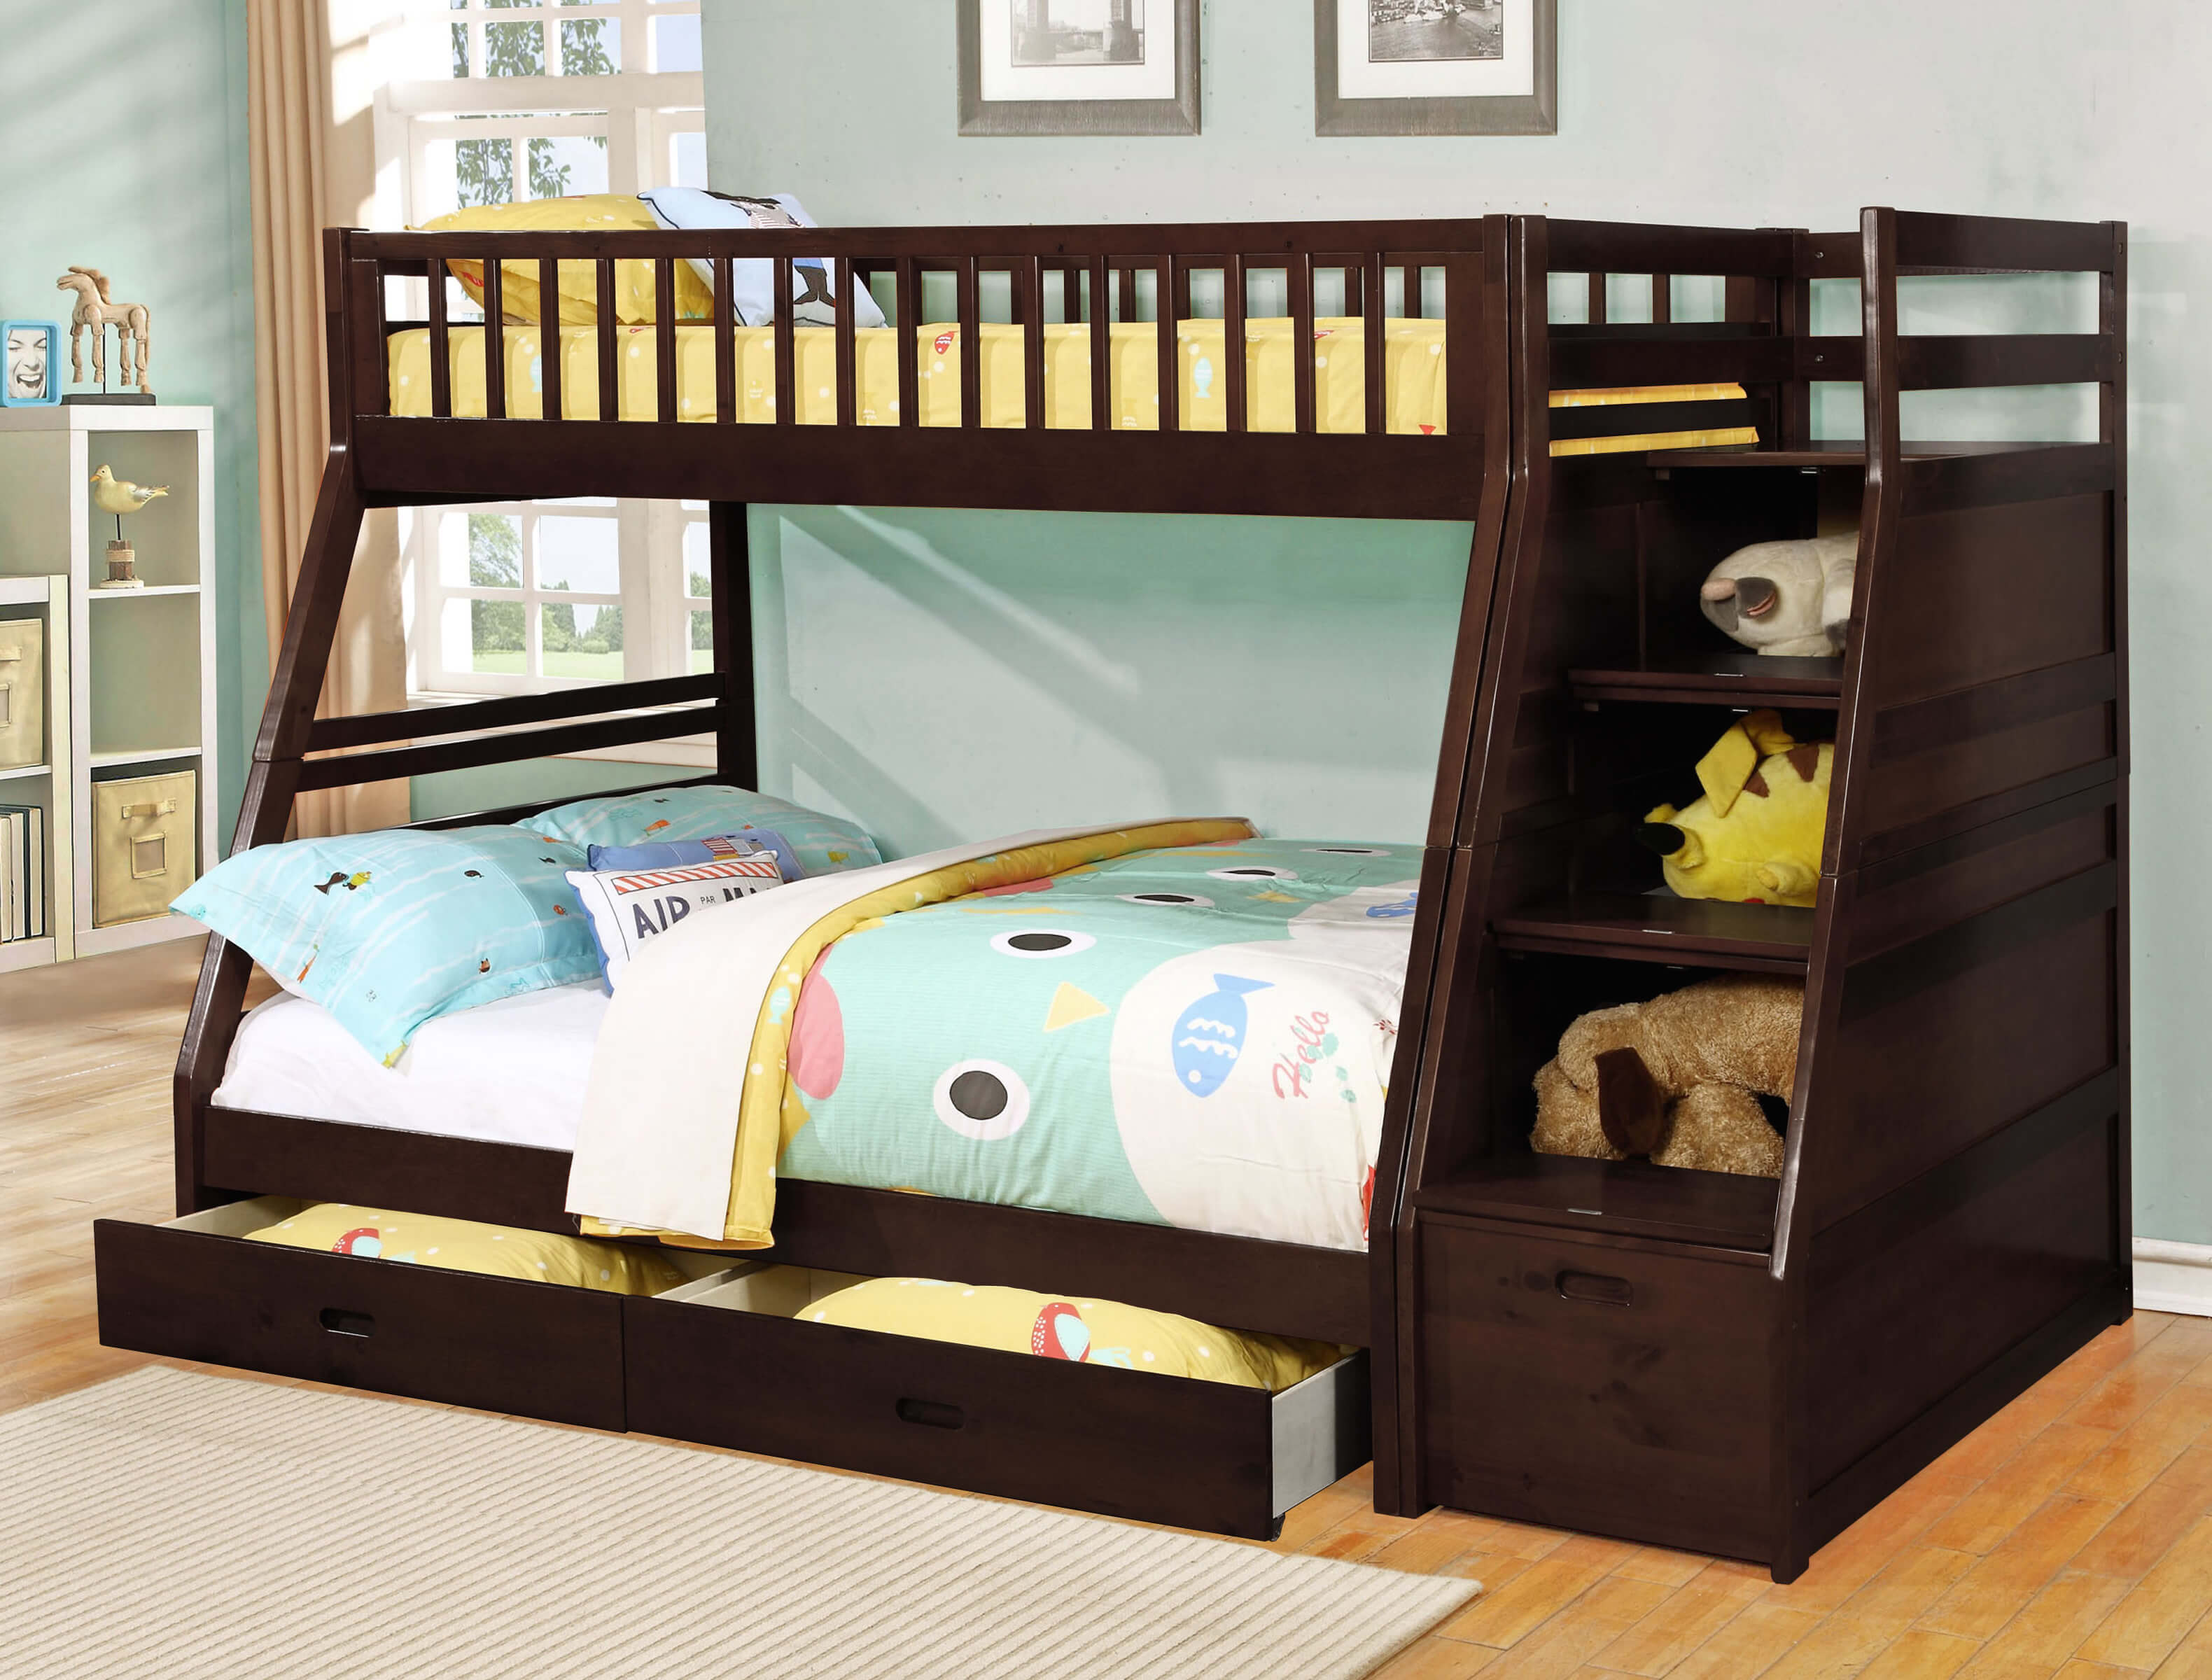 Twin Loft Bed With Stairs Excellent For Set Up The Muddle